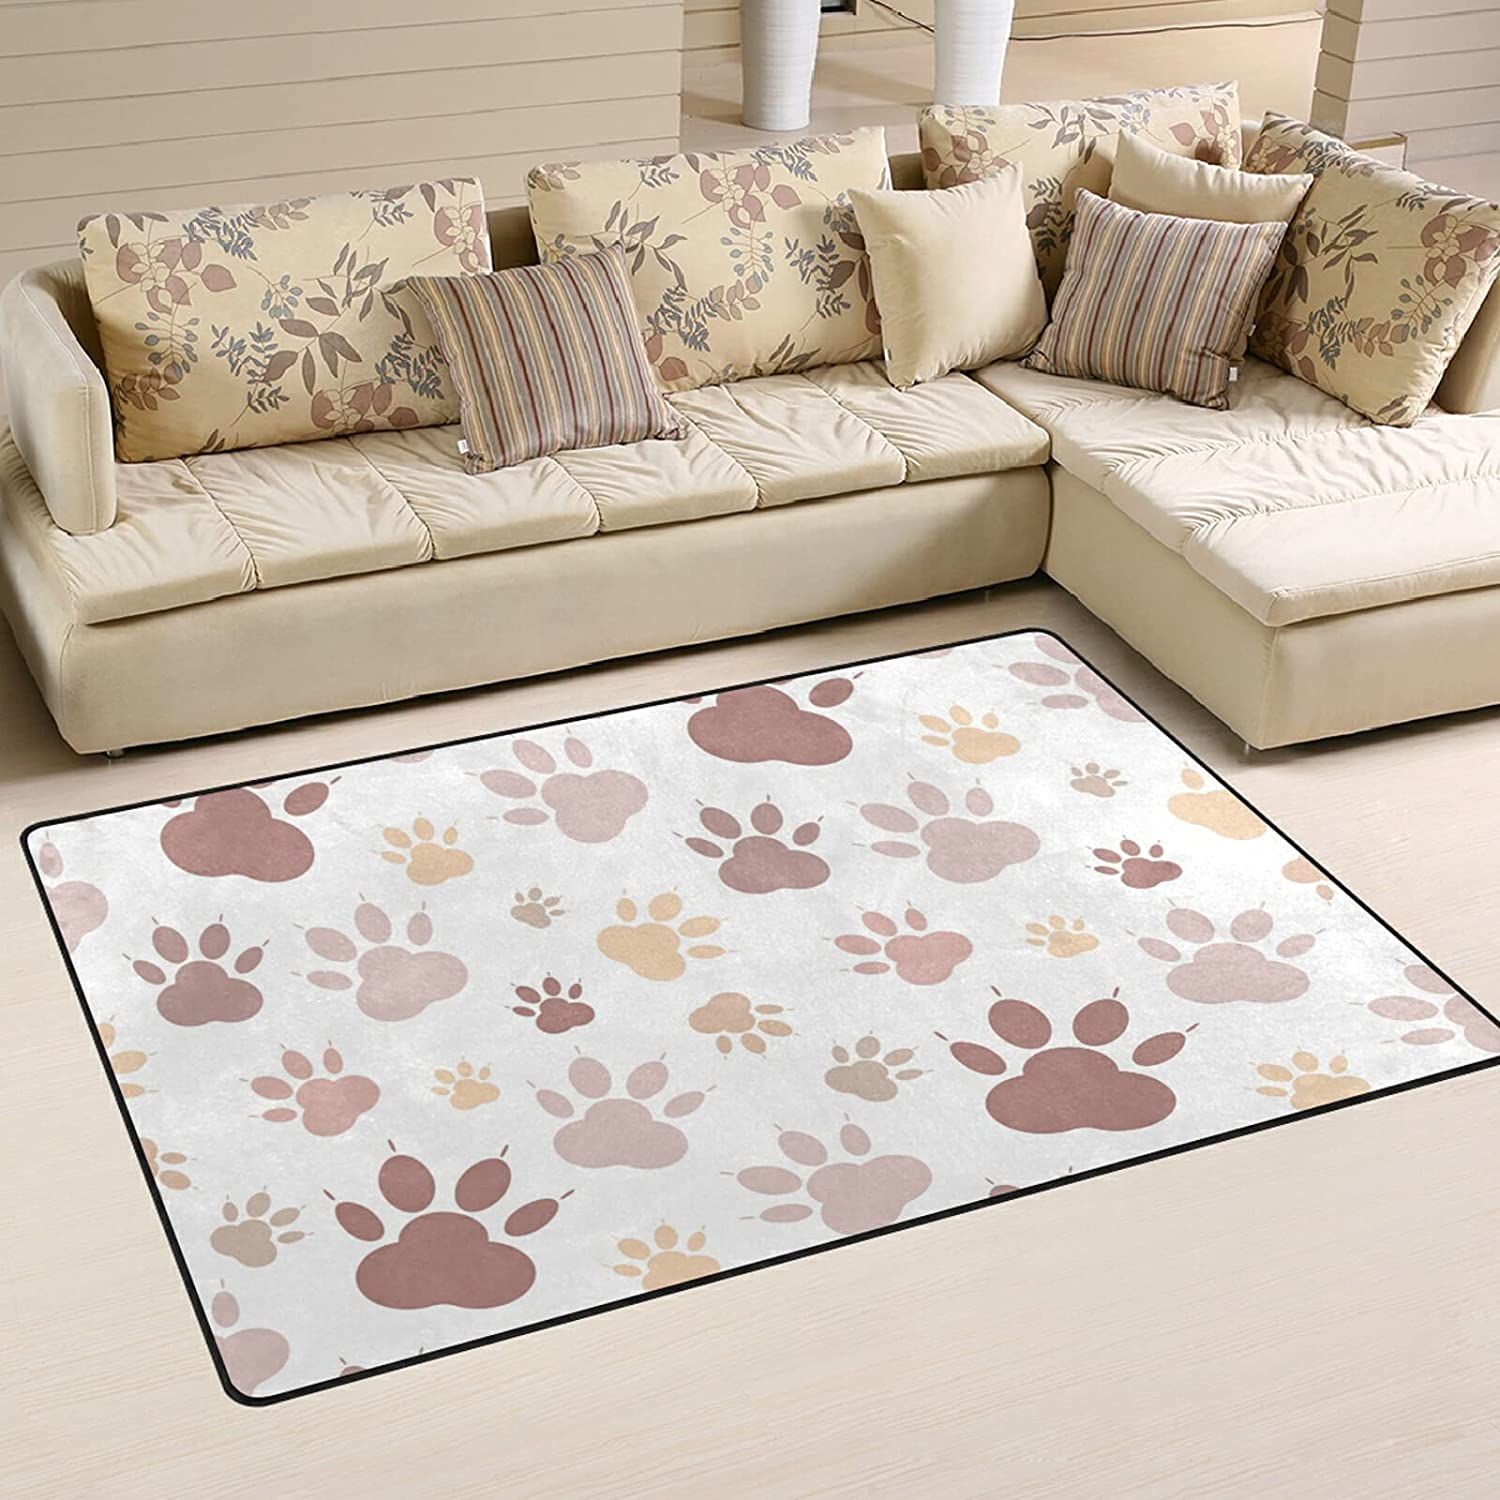 Dog Cat Paw Max 67% OFF Pattern Large Soft Area Rug Playmat NEW Nursery Mat Rugs